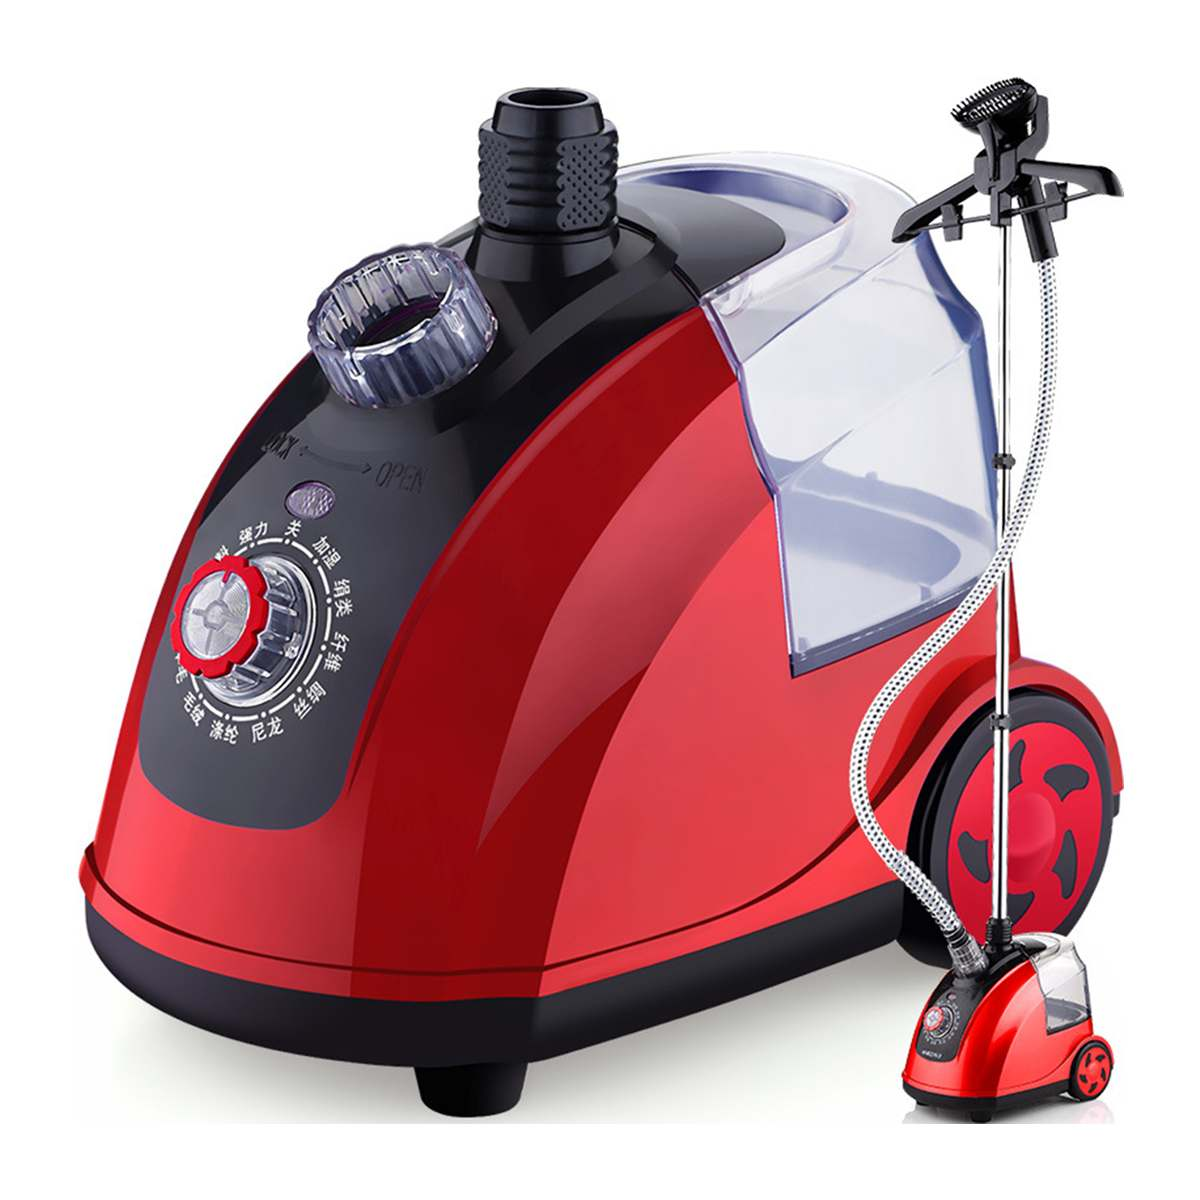 Garment Steamer Iron Adjustable Clothes Steamer With 70 Minutes Of Continuous Steam 1800W 1.8L Water Tank 26s Fast Steam control of continuous stirred tank reactors